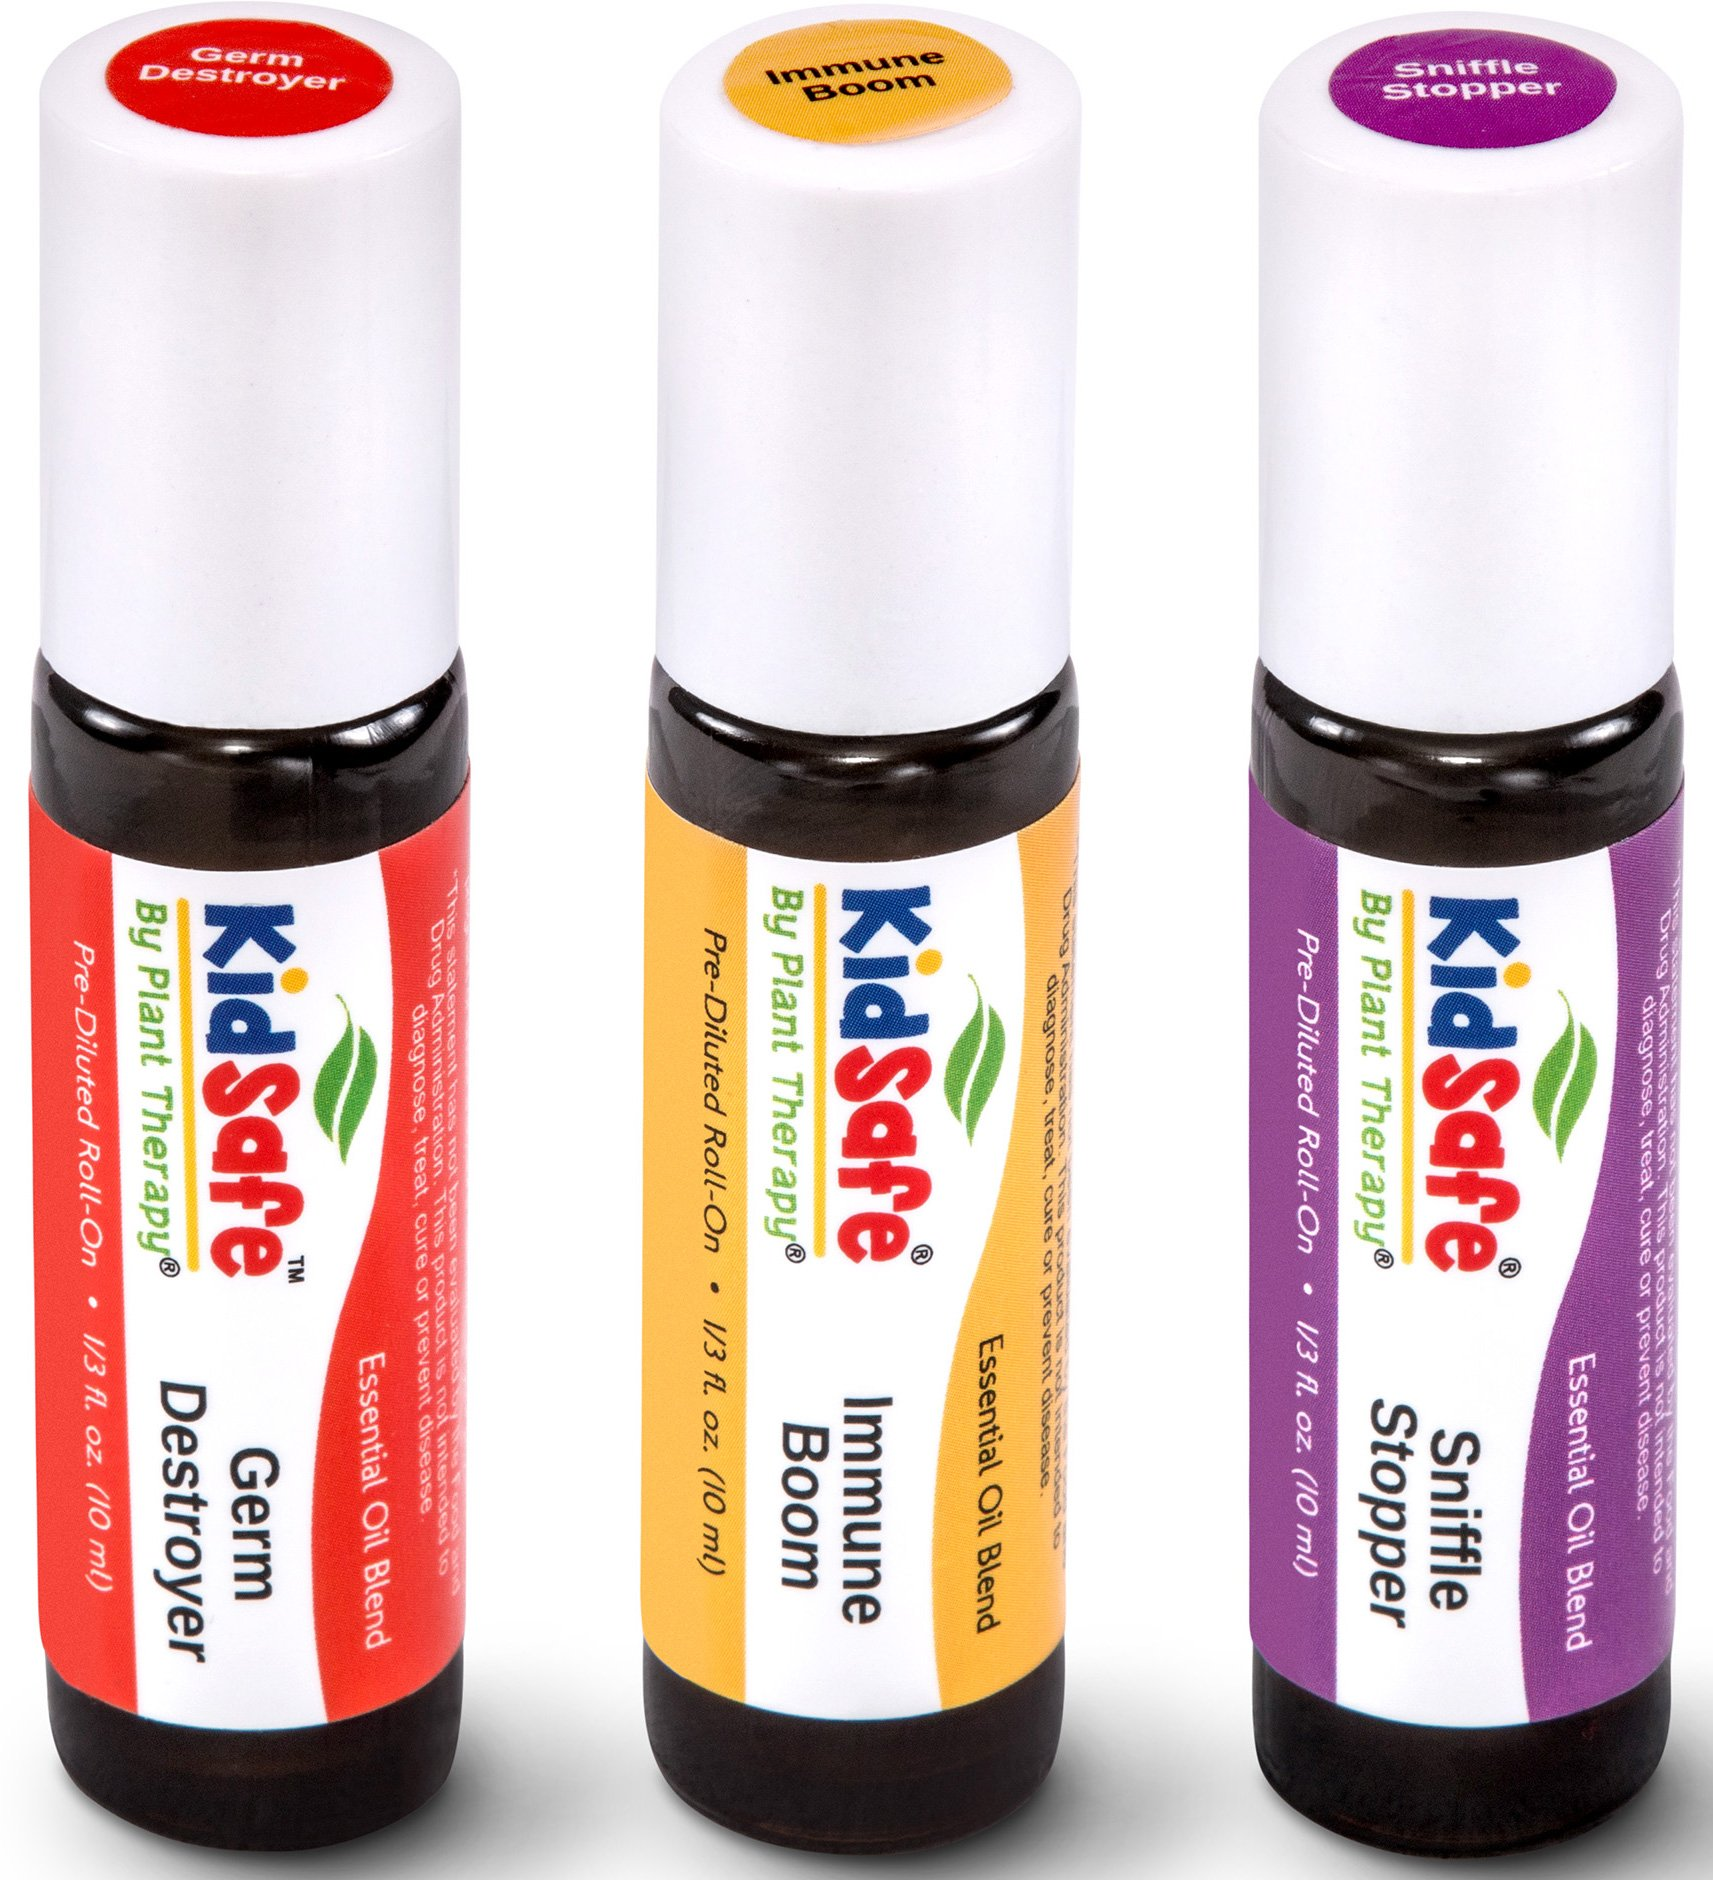 Plant Therapy KidSafe Wellness Roll-On Sampler Set. 100% Pure, Therapeutic Grade Essential Oils Diluted in Coconut Oil. Includes: Germ Destroyer, Immune Boom and Sniffle Stopper. 10 ml (1/3 oz) each.